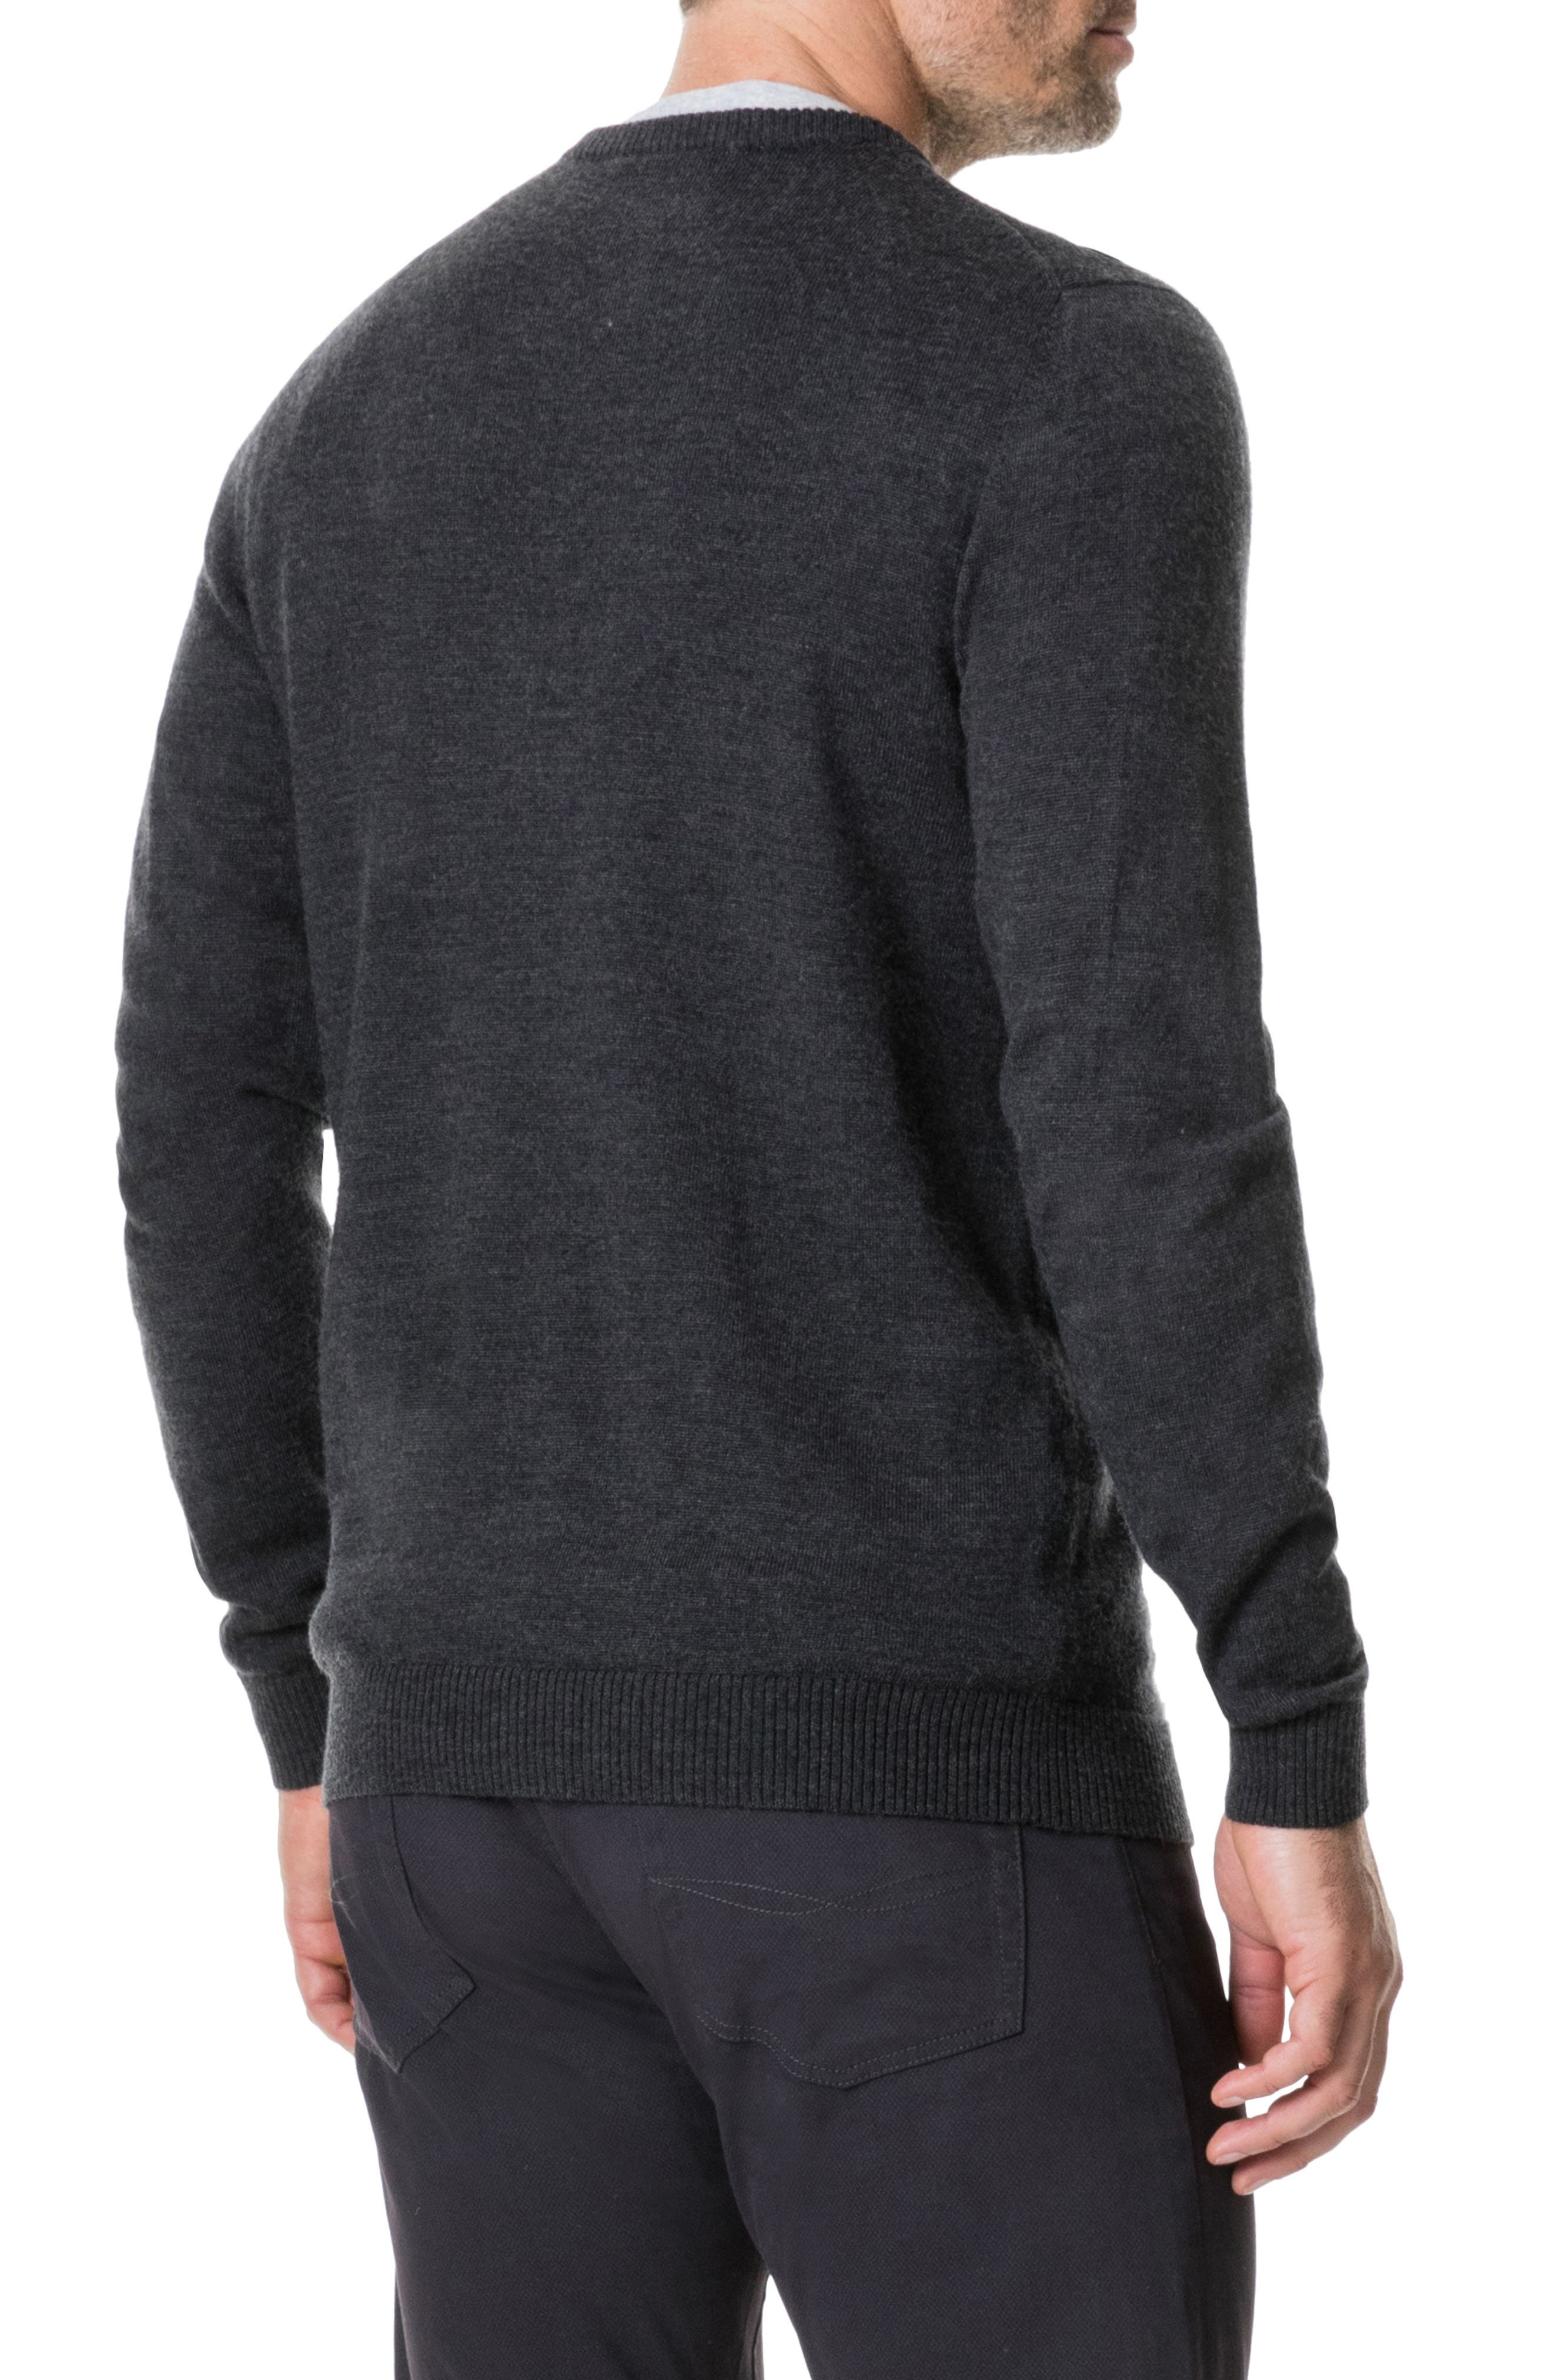 Calderwell Pointer Intarsia Knit Wool Sweater,                             Alternate thumbnail 2, color,                             CHARCOAL